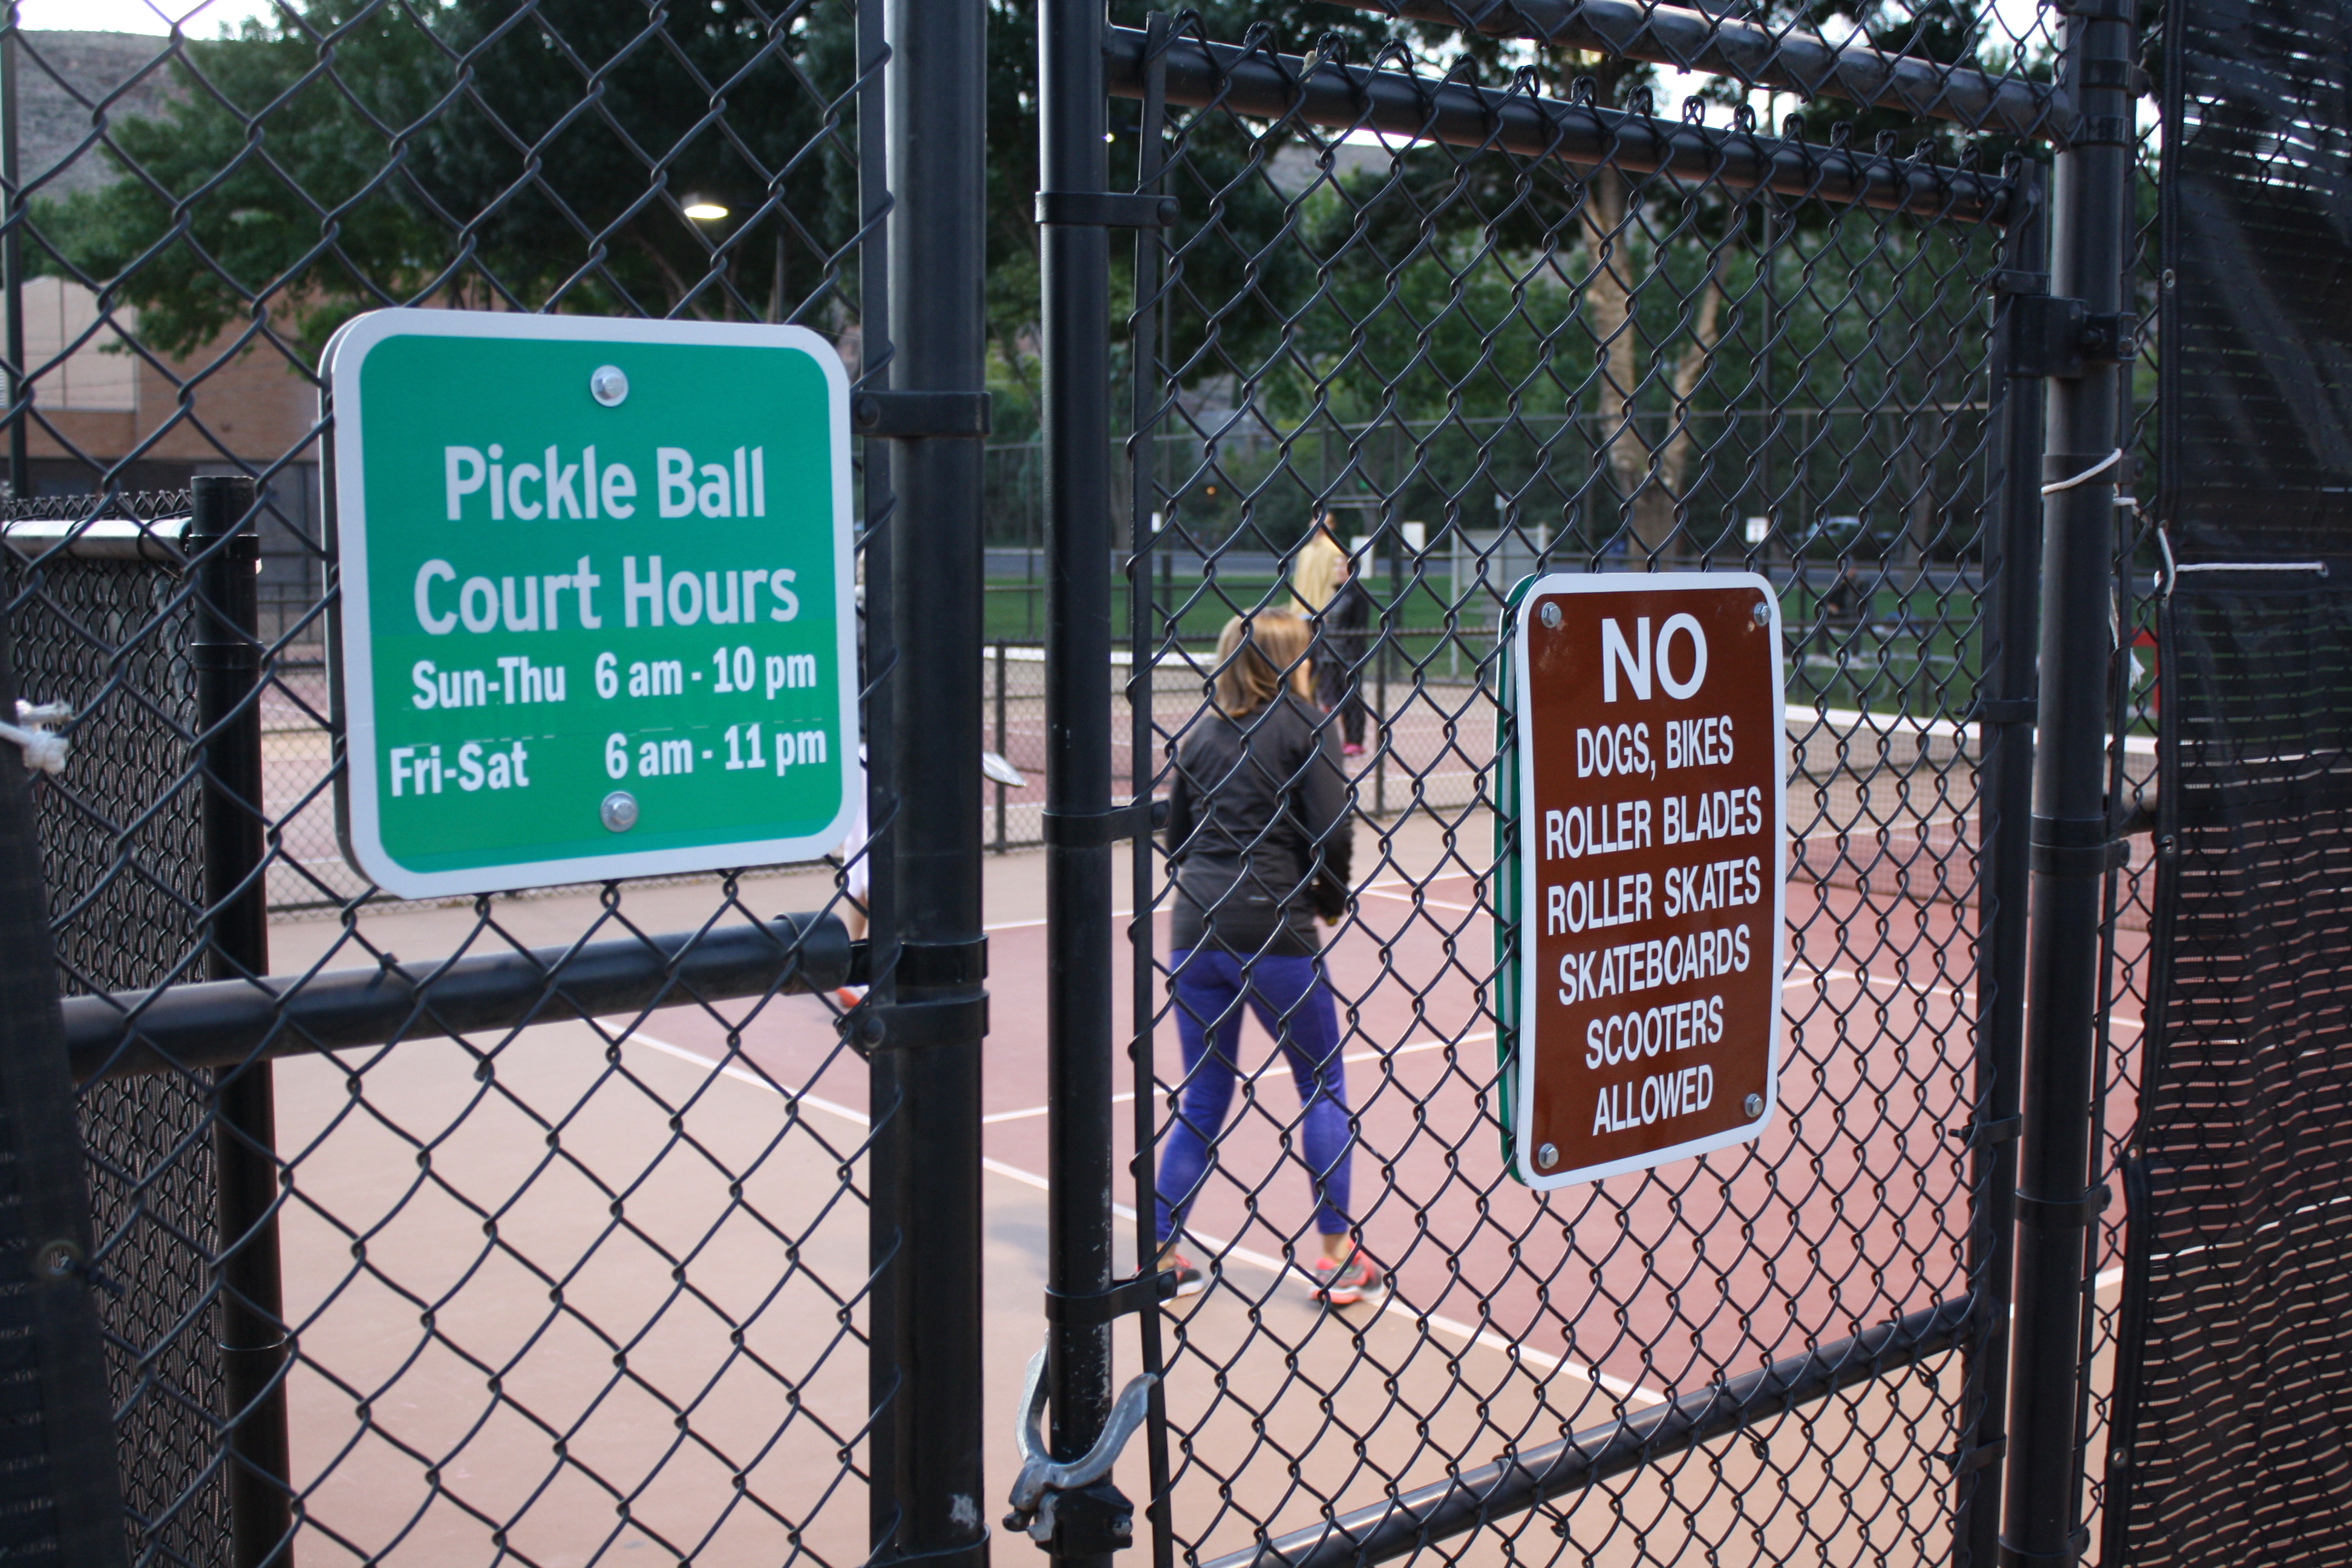 Players enjoy games of pickleball at the Hurricane pickleball courts, Hurricane, Utah, Oct. 7, 2016 | Photo by Reuben Wadsworth, St. George News